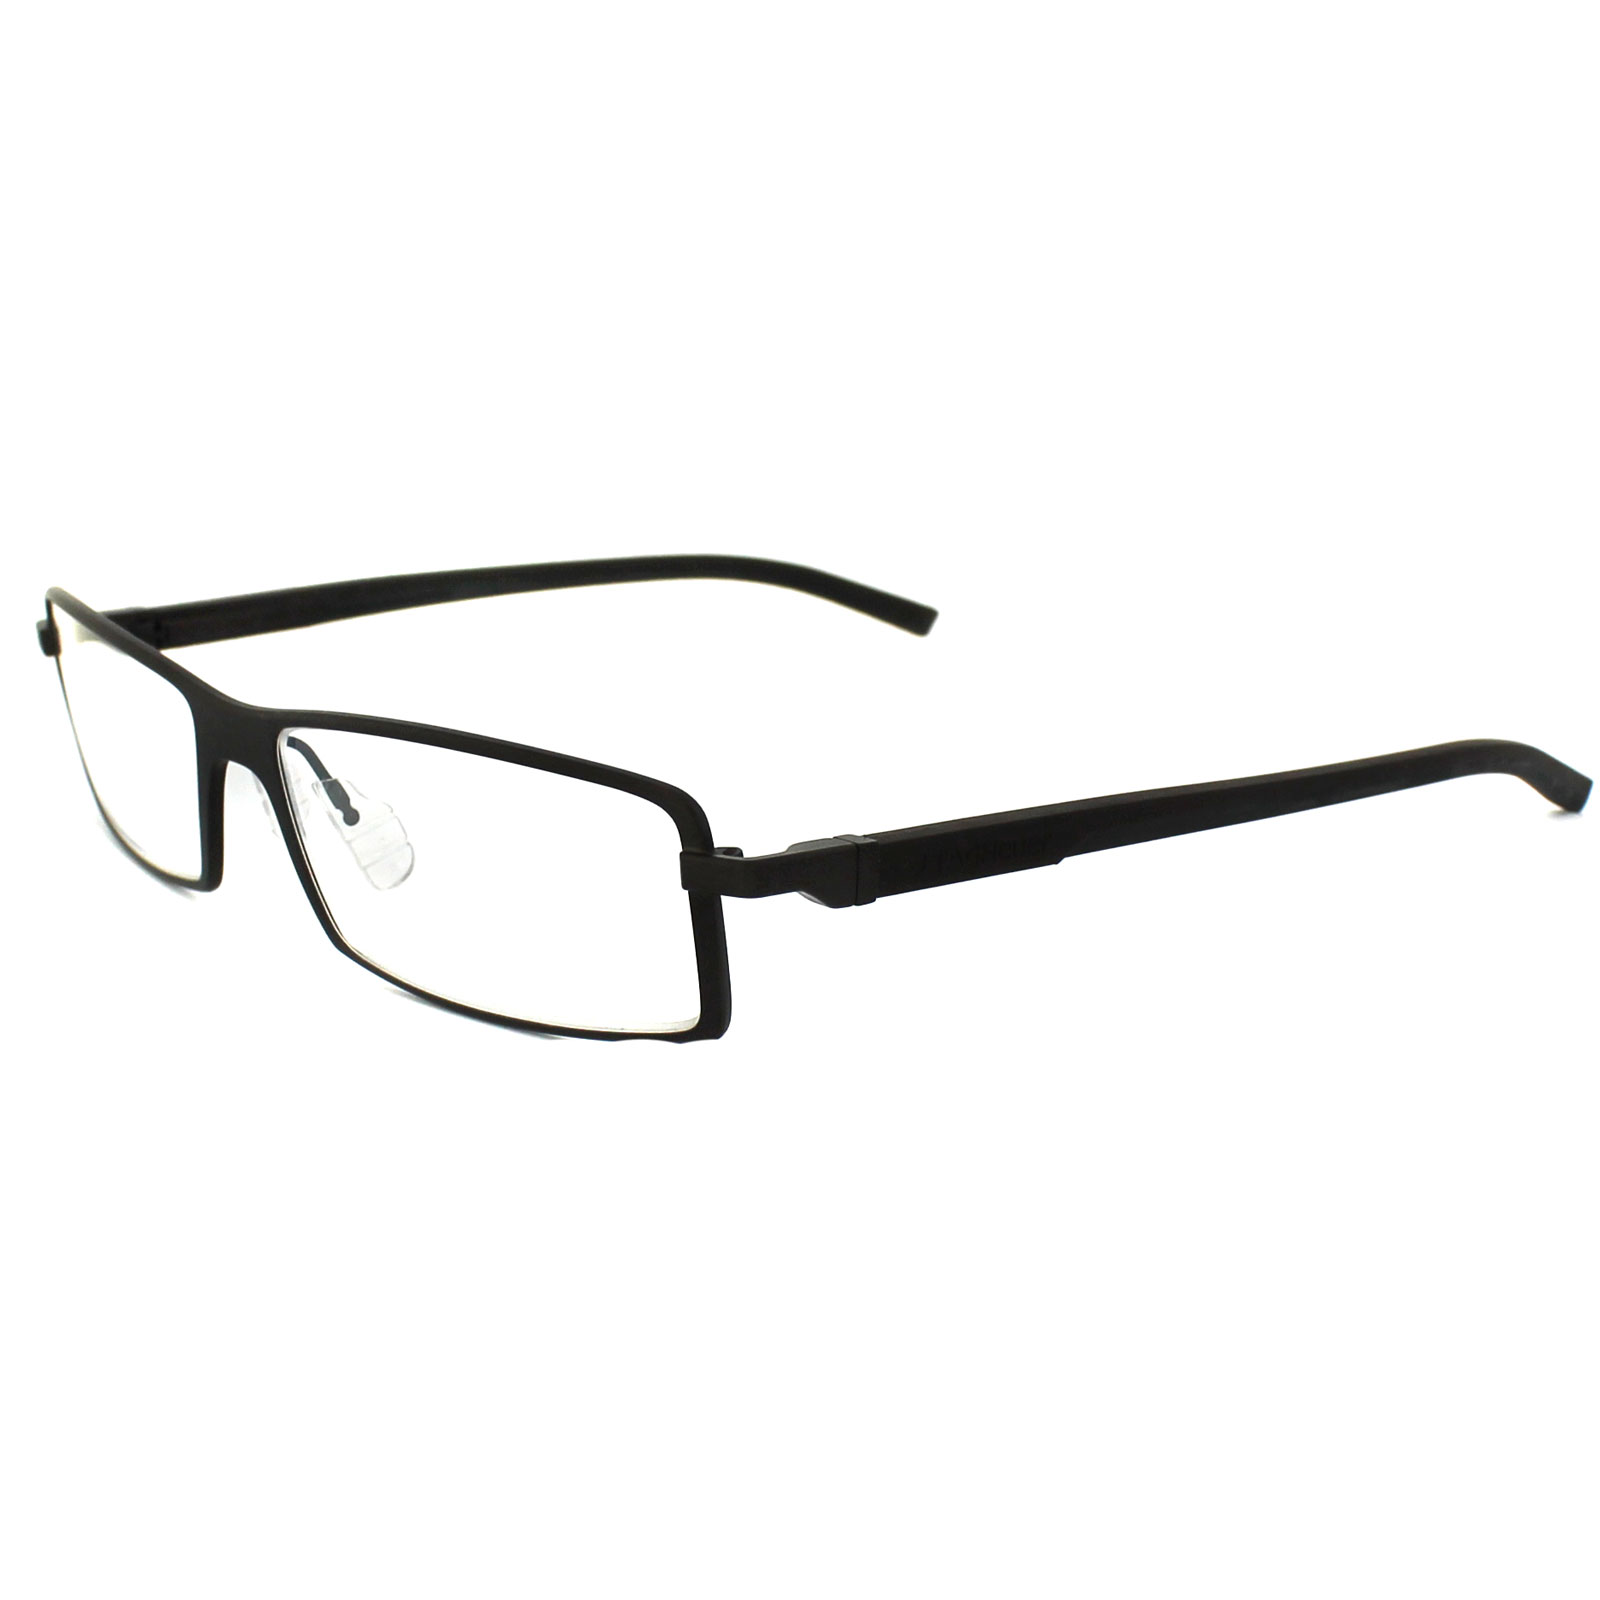 Tag Heuer Glasses Frames Automatic 003 Matt Chocolate